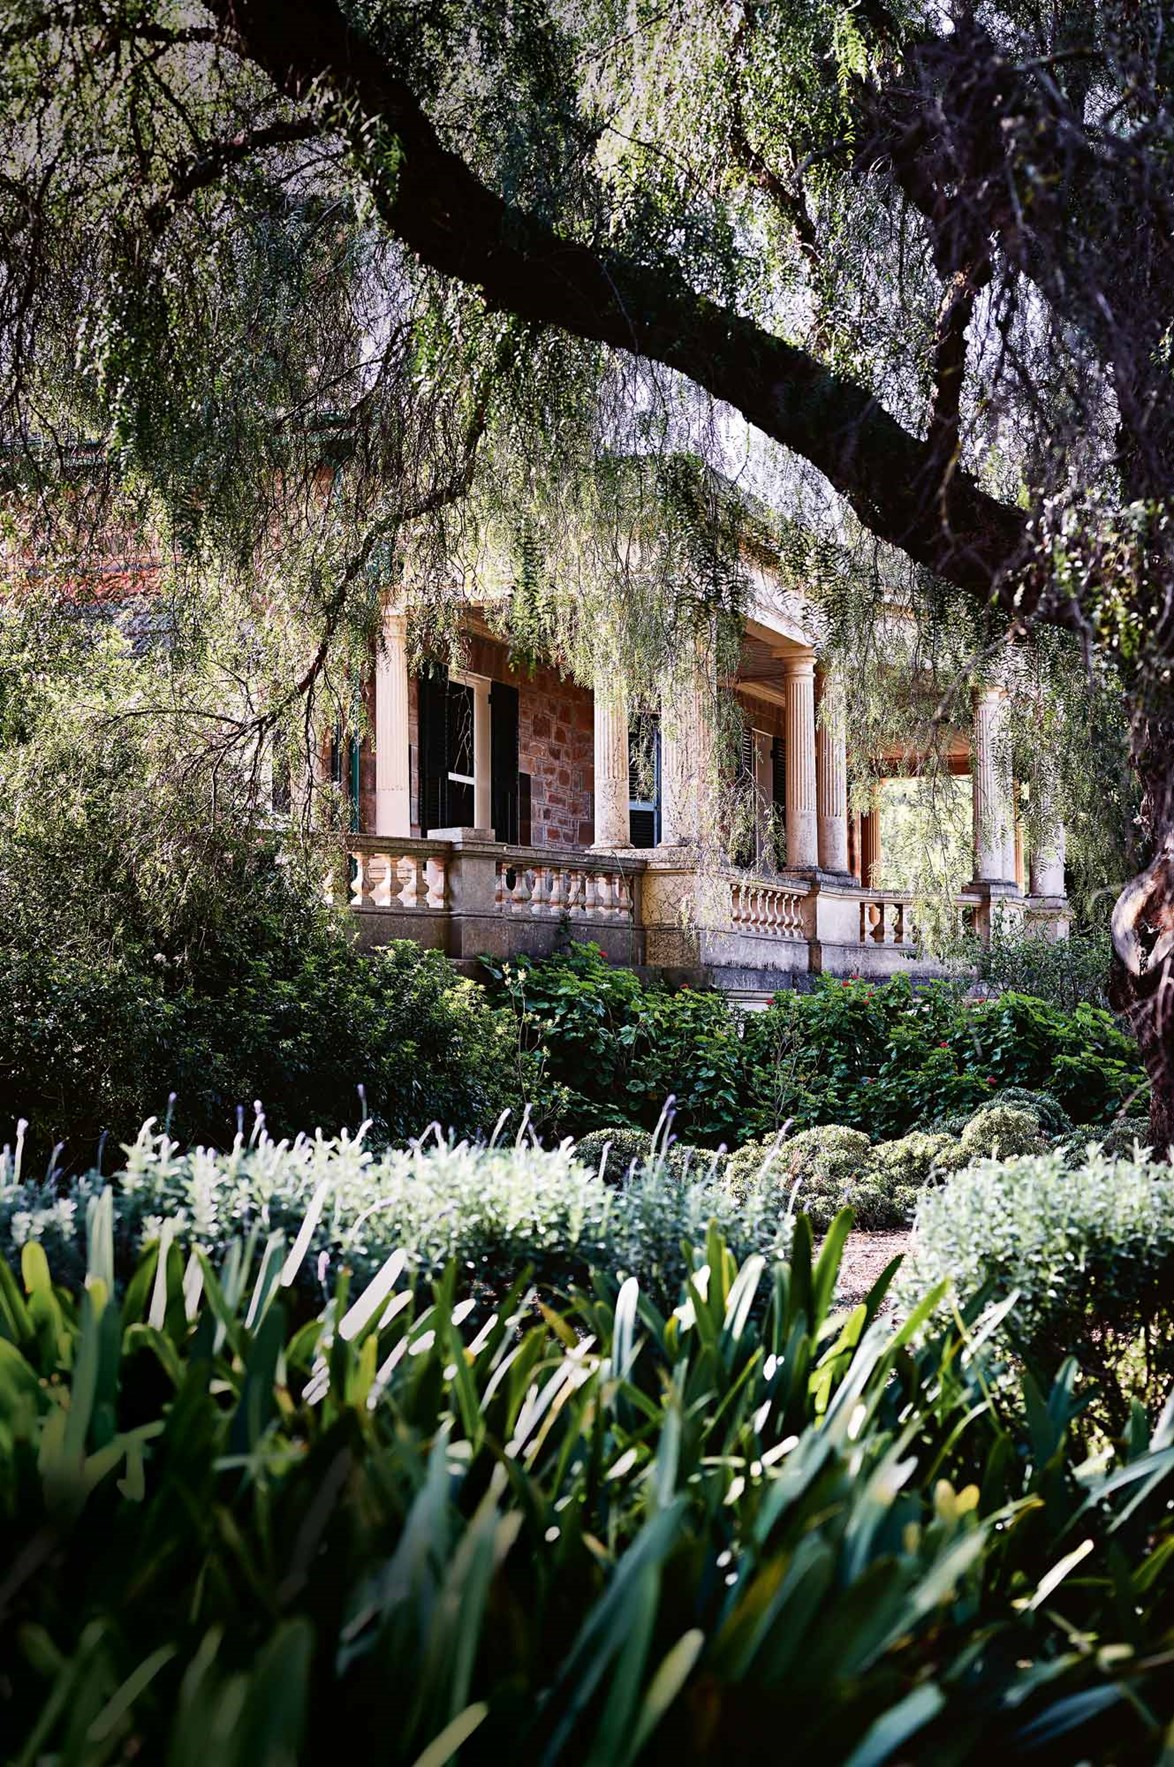 "<p>**ANLABY STATION, BAROSSA VALLEY, SA**<p> <p>Trees are one of nature's greatest gifts, and if saying 'I do' beneath the leafy branches of a particularly romantic Chinese elm tree sounds like your idea of a dream ceremony, then [Anlaby Station](https://www.homestolove.com.au/one-of-the-oldest-and-grandest-homesteads-in-the-barossa-valley-14038|target=""_blank"") is perfect for you. Not only will you adore the allure of the grand historic homestead, but your guests will too – all with a glass of champagne in hand. Once the ceremony is done and dusted, everyone can head on over to the Clydesdale Pavillion, a stone building on site with brick floors and a corrugated iron roof.<p> <p>**For more information, visit [Anlaby Station](https://anlaby.com.au/